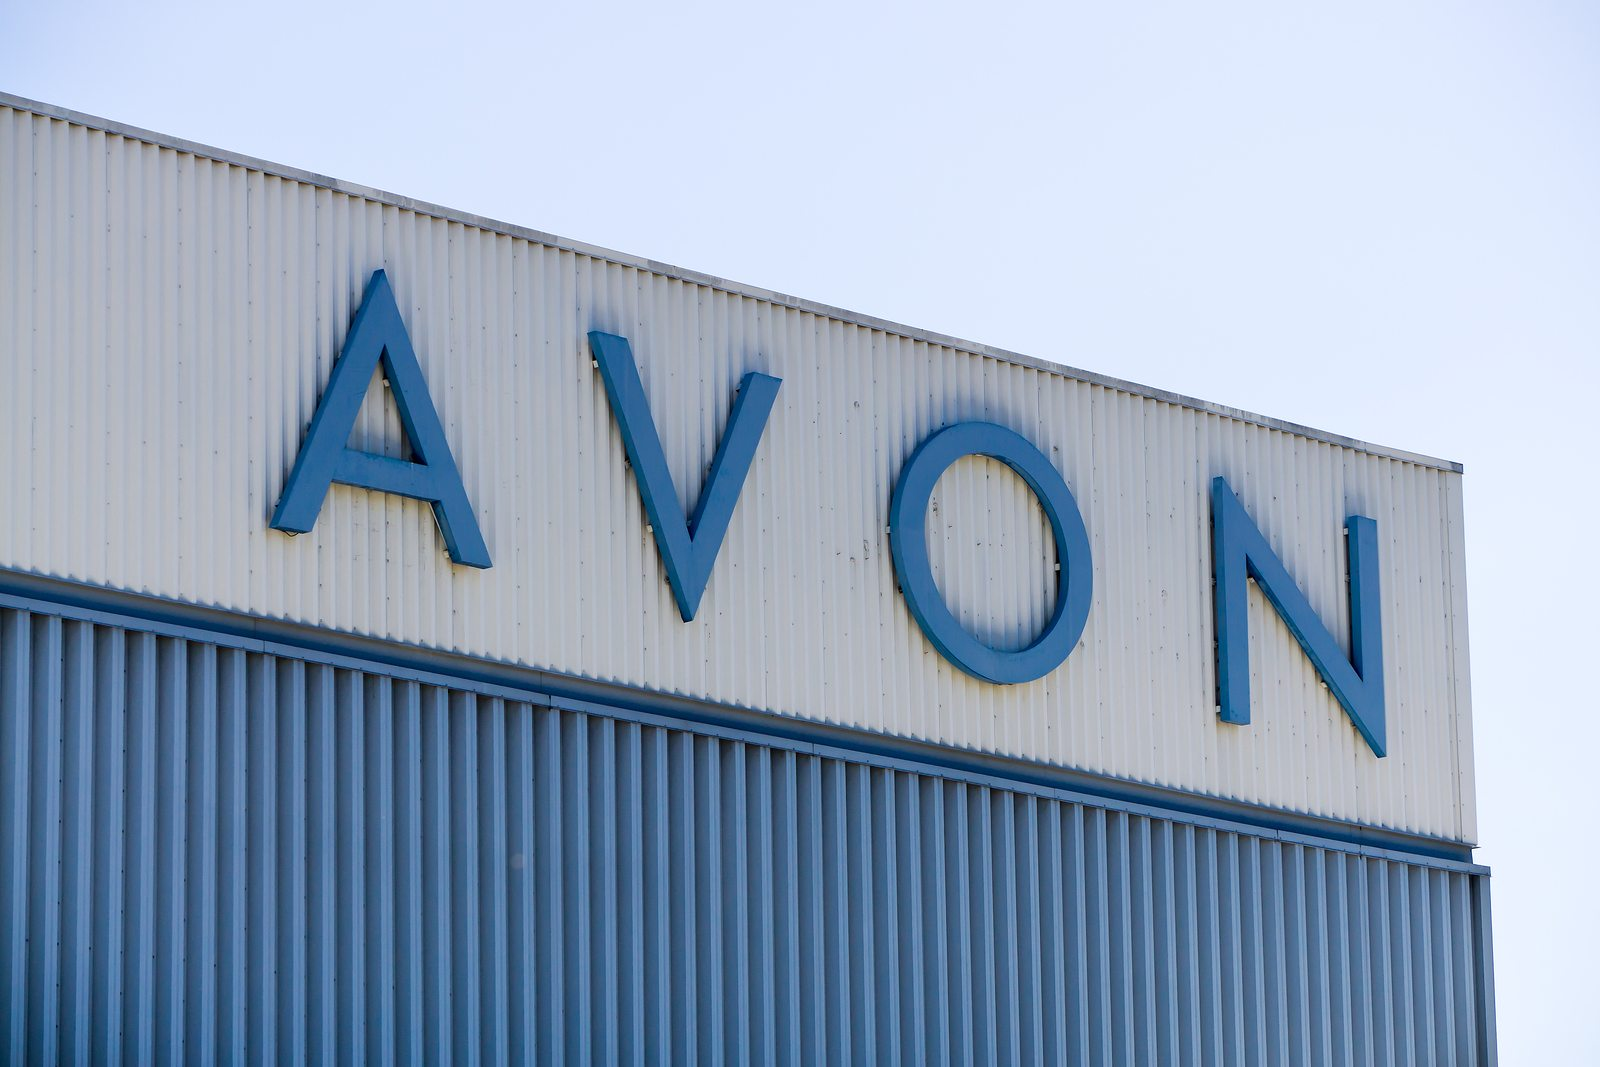 Shareholder Group Calls On Avon Board To Explore The Sale Of The Company